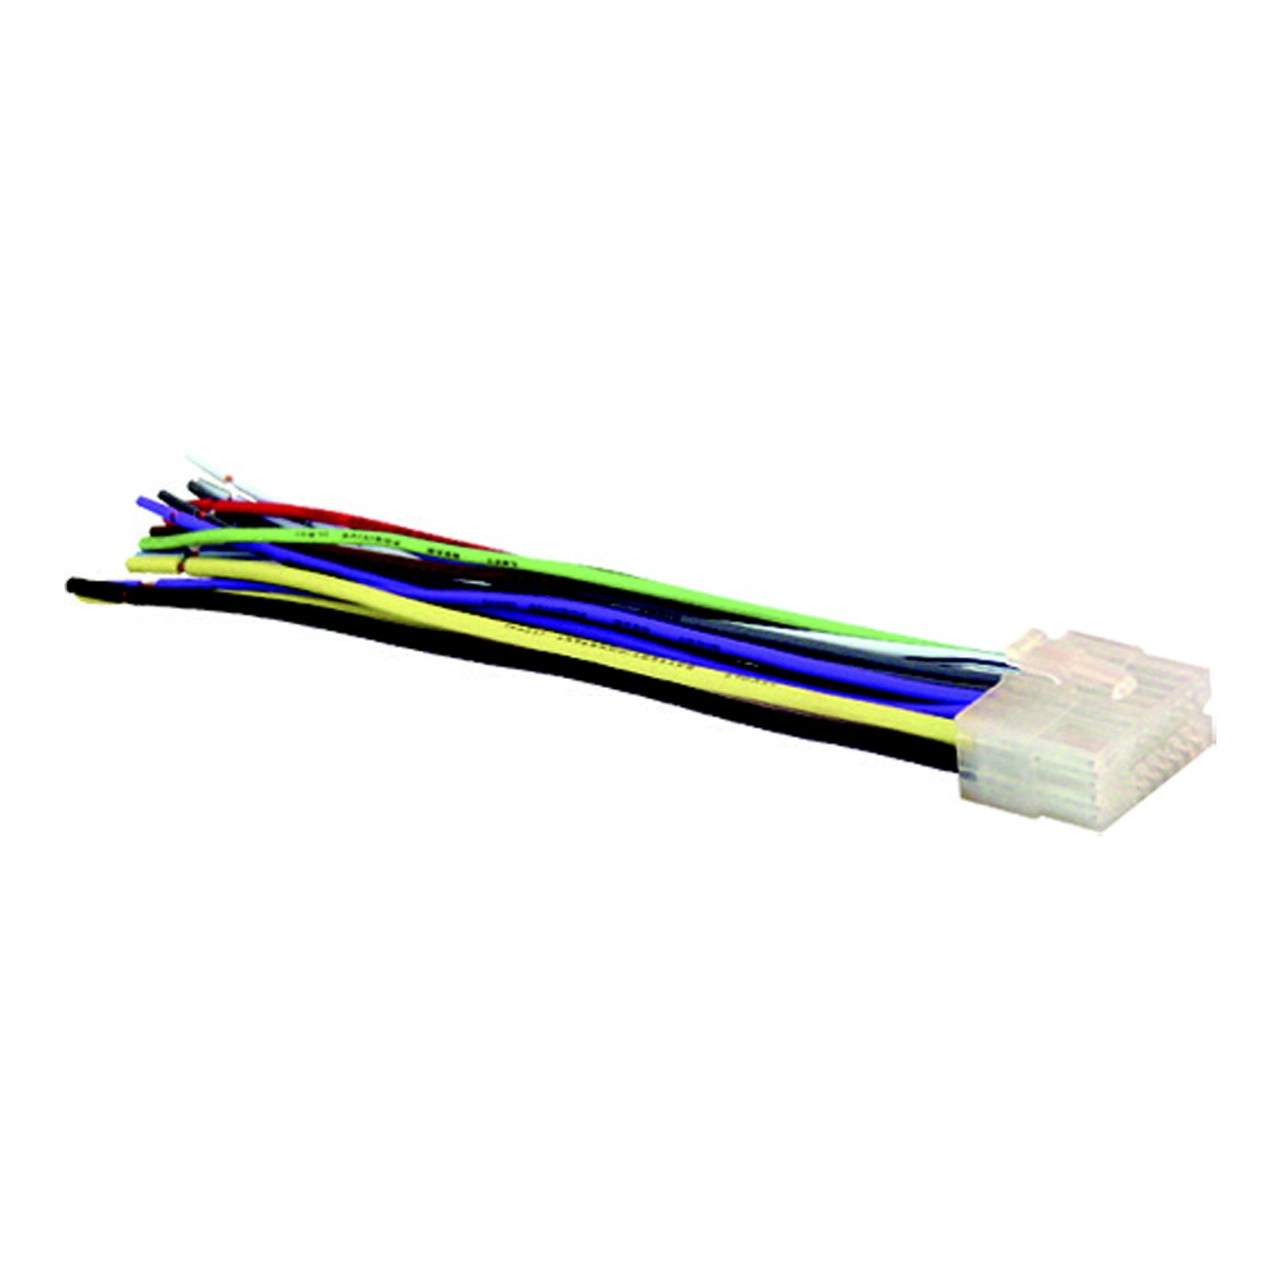 wiring harness clarion 16 pin cl1602 2002 xscorpion wiring harness pioneer 16 pin 20032004 xscorpion join the [ 1000 x 1000 Pixel ]